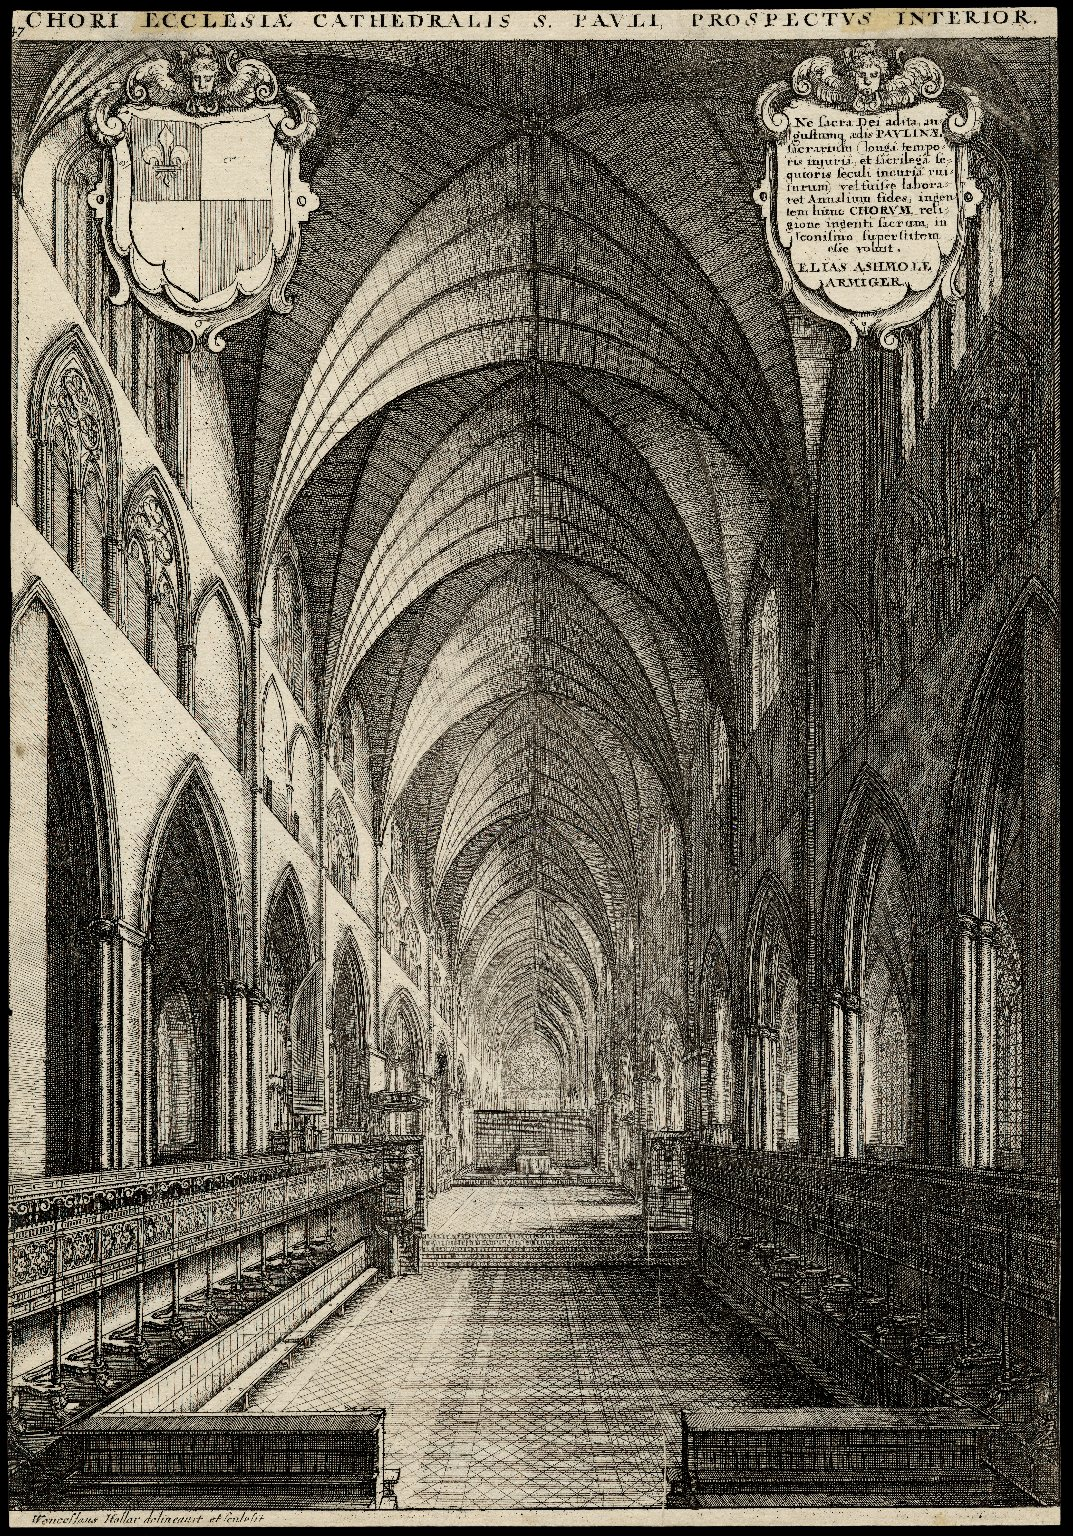 Engraving of the interior of St. Paul's Cathedral by Wenceslaus Hollar. Image courtesy of the Folger Digital Image Collection.